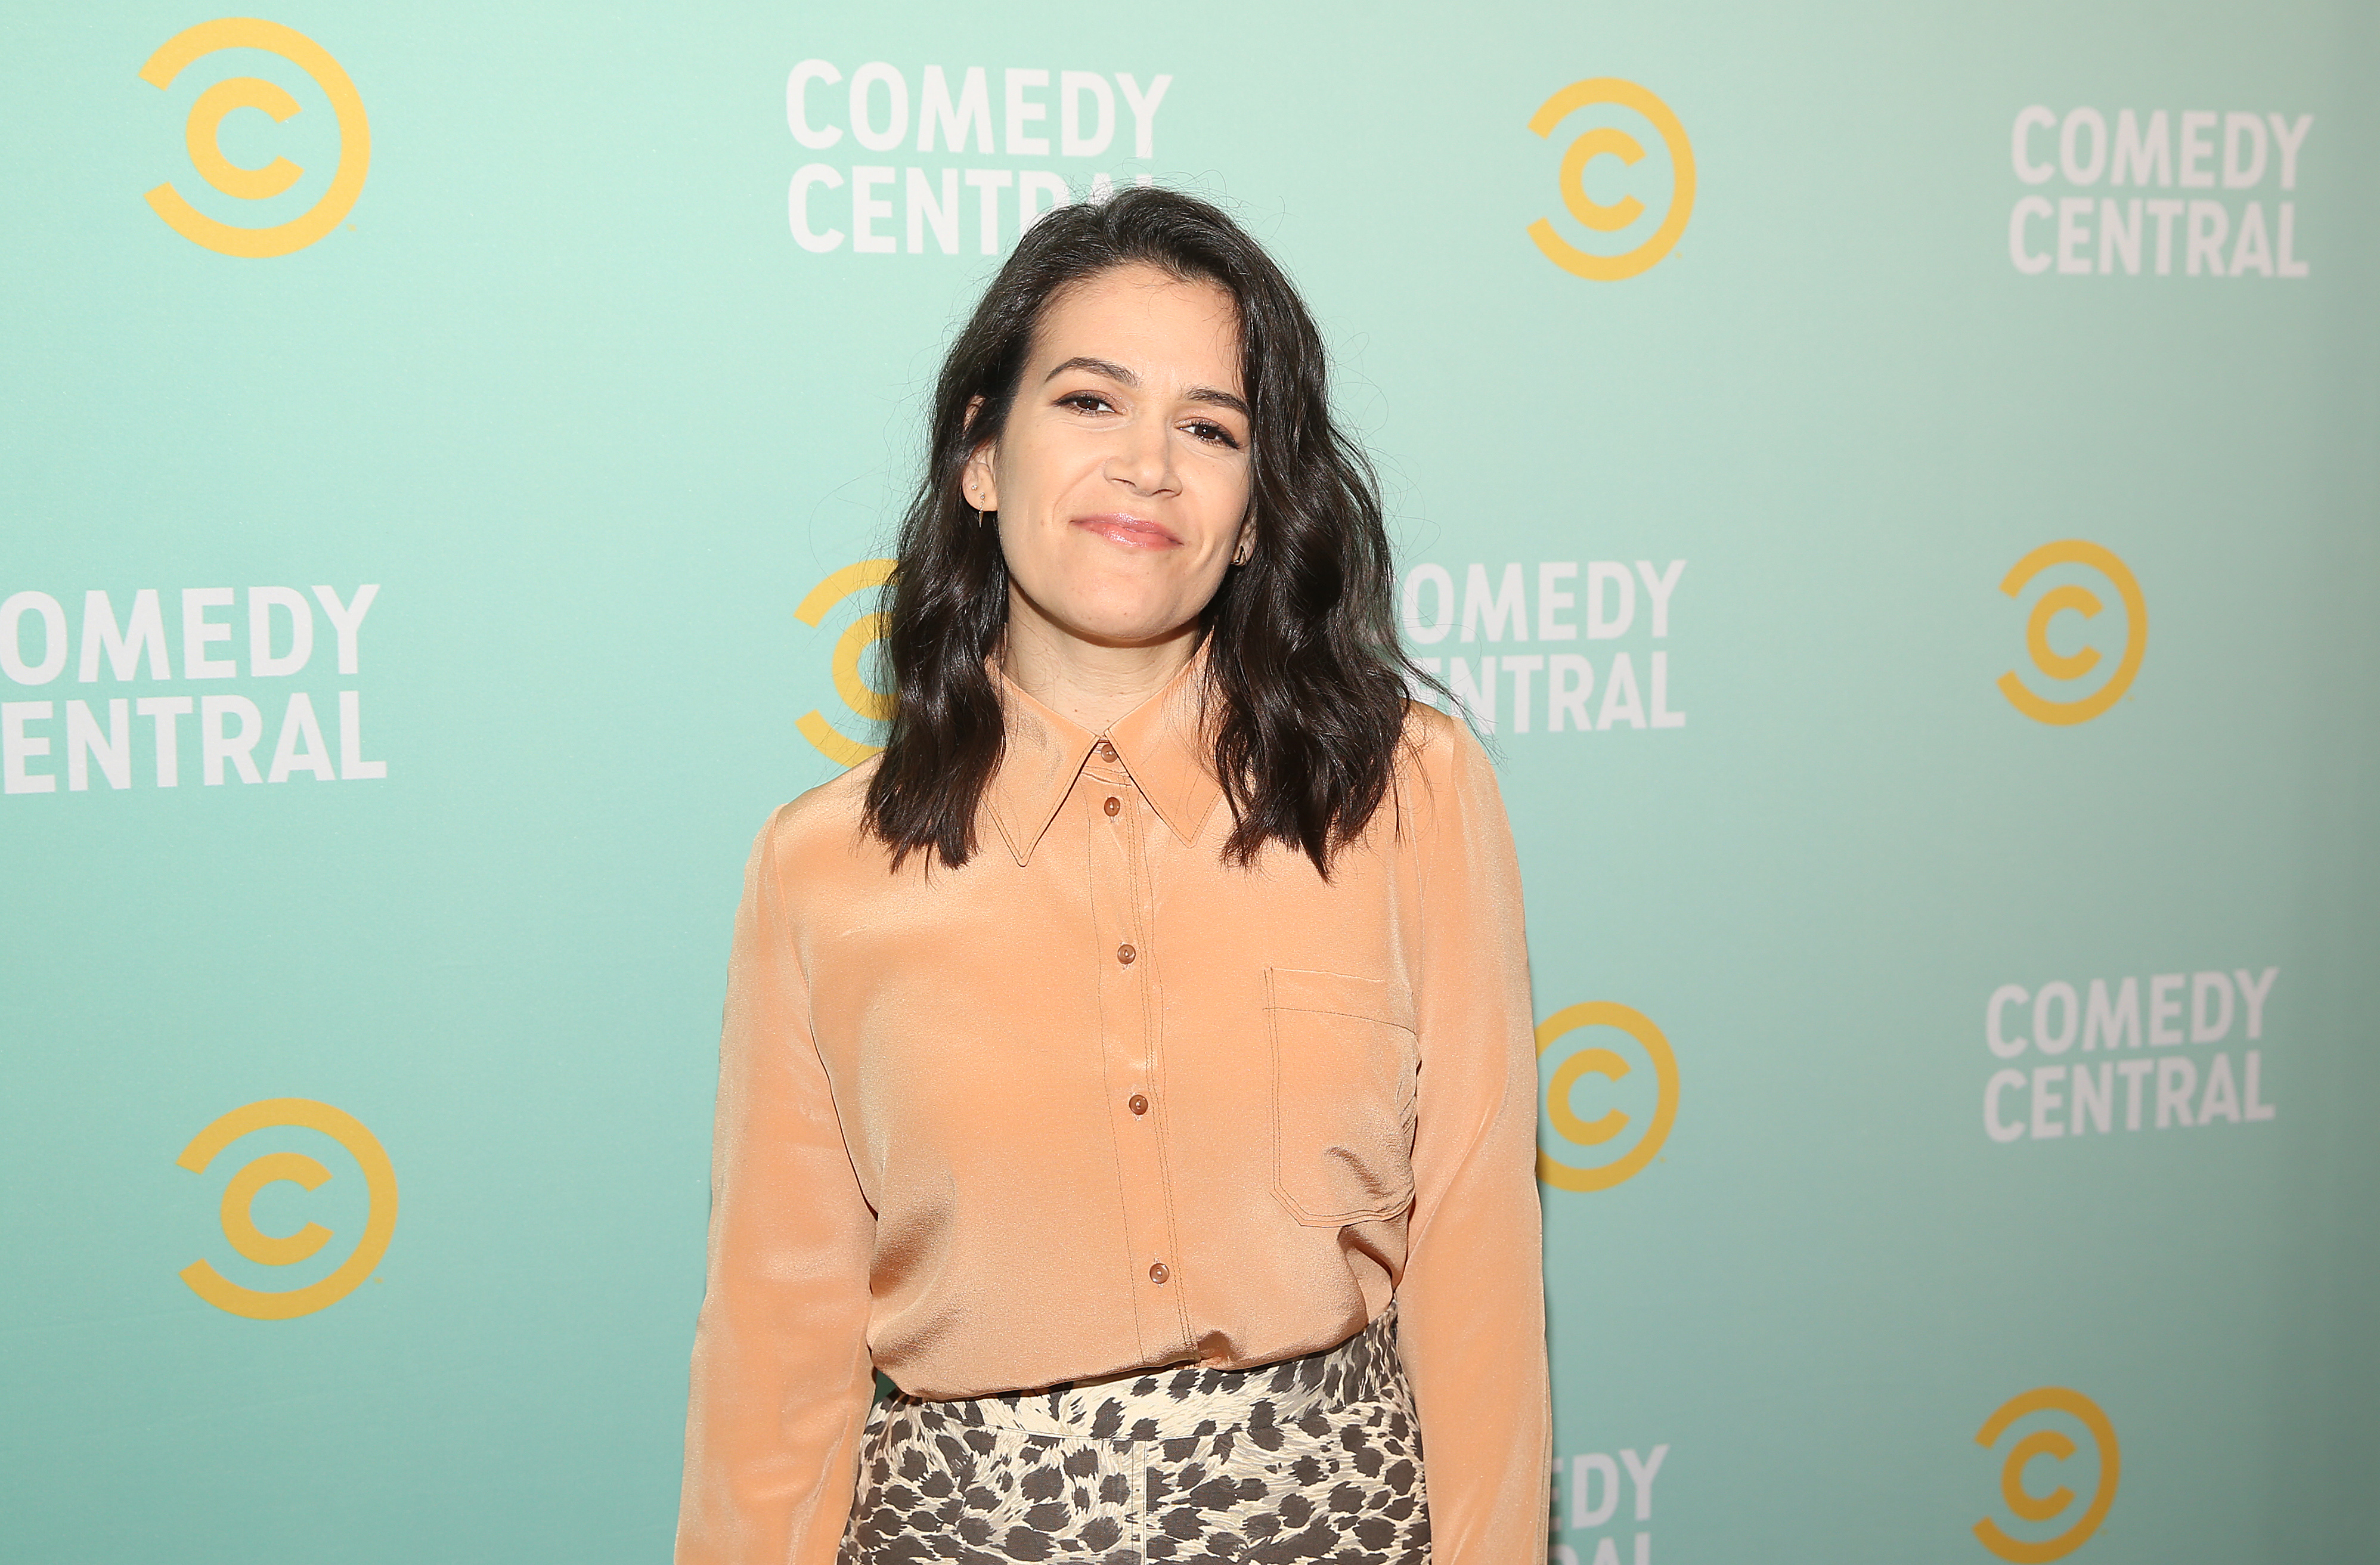 Abbi Jacobson attends the 2019 Comedy Central Press Day in Hollywood, California. (Jesse Grant/Getty Images for Comedy Central)